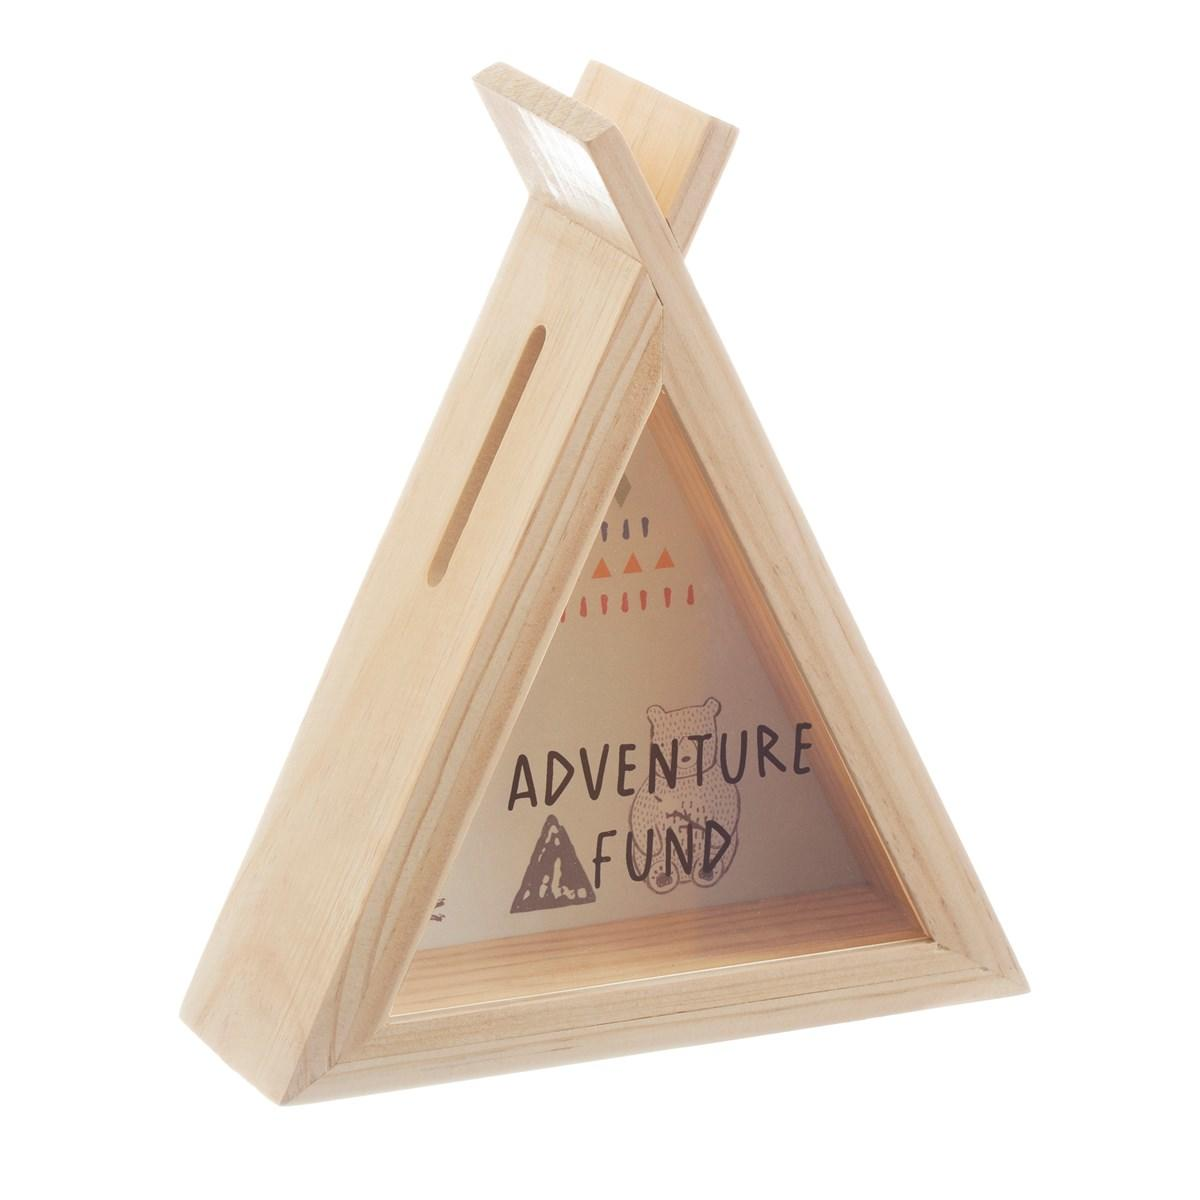 New Wooden Bear Camp Teepee Money Box with Illustrations